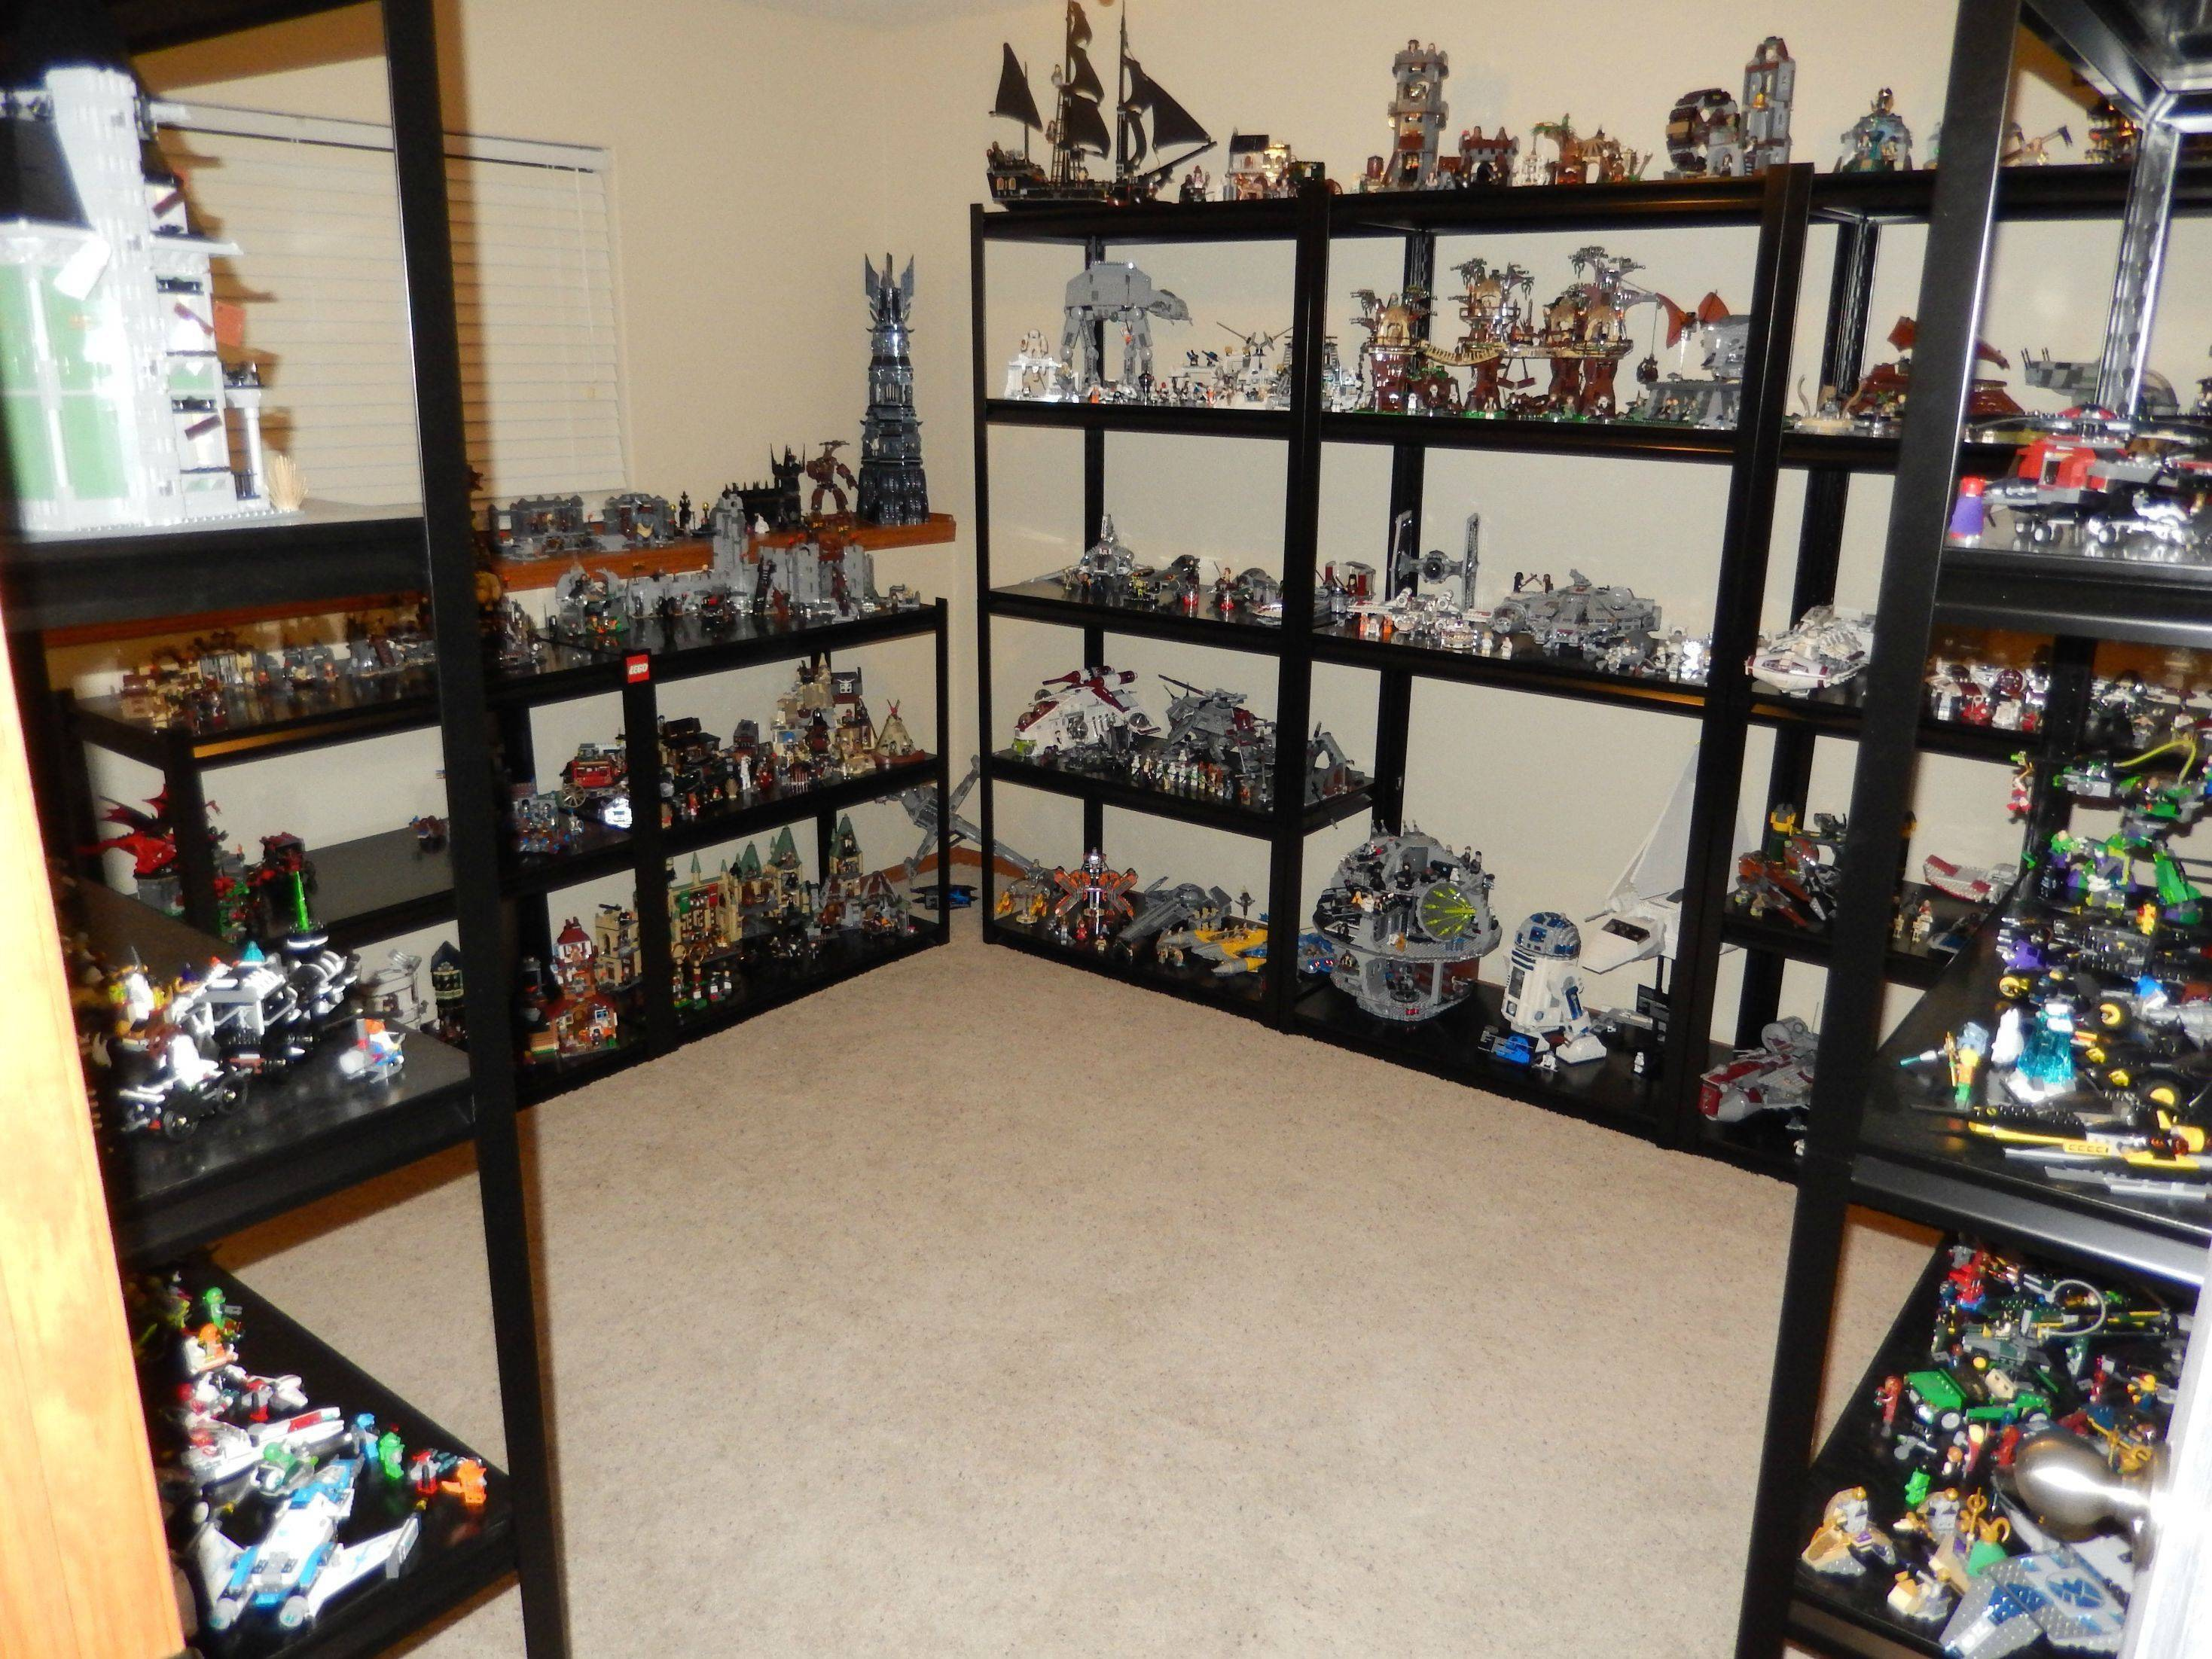 lego sets in the room